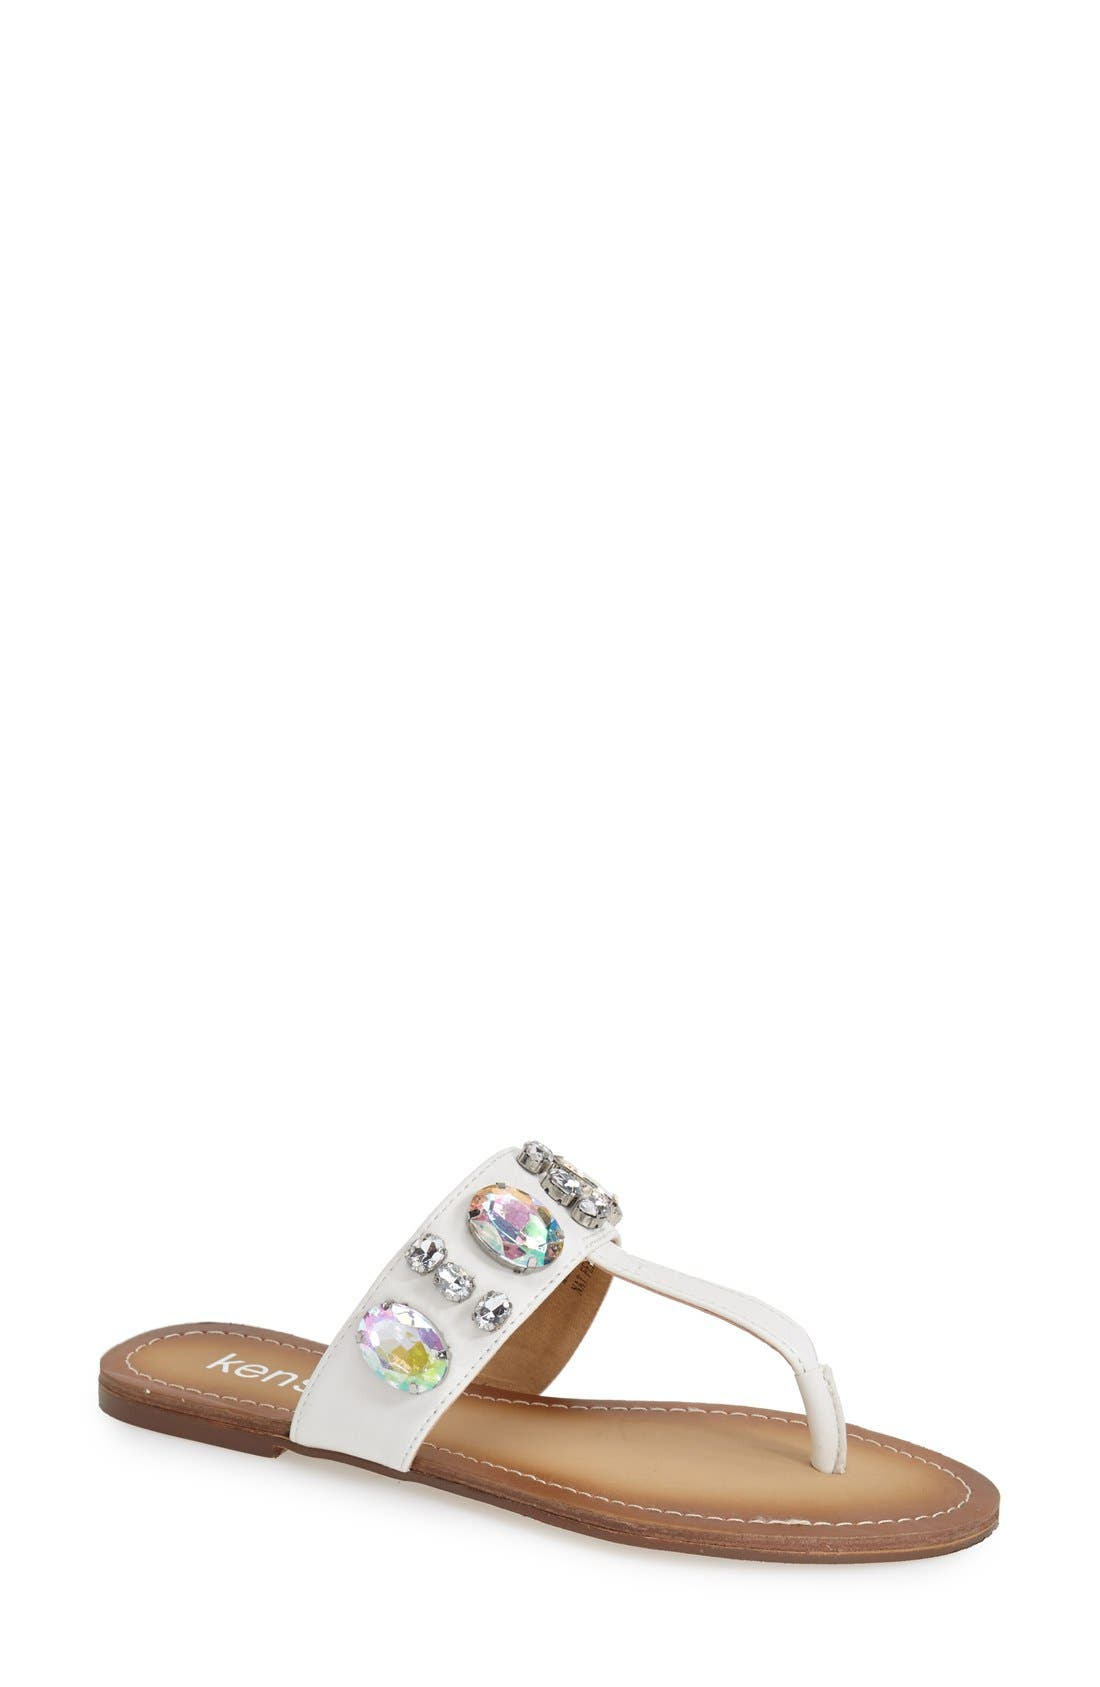 Alternate Image 1 Selected - kensie 'Tatianly' Thong Sandal (Women)